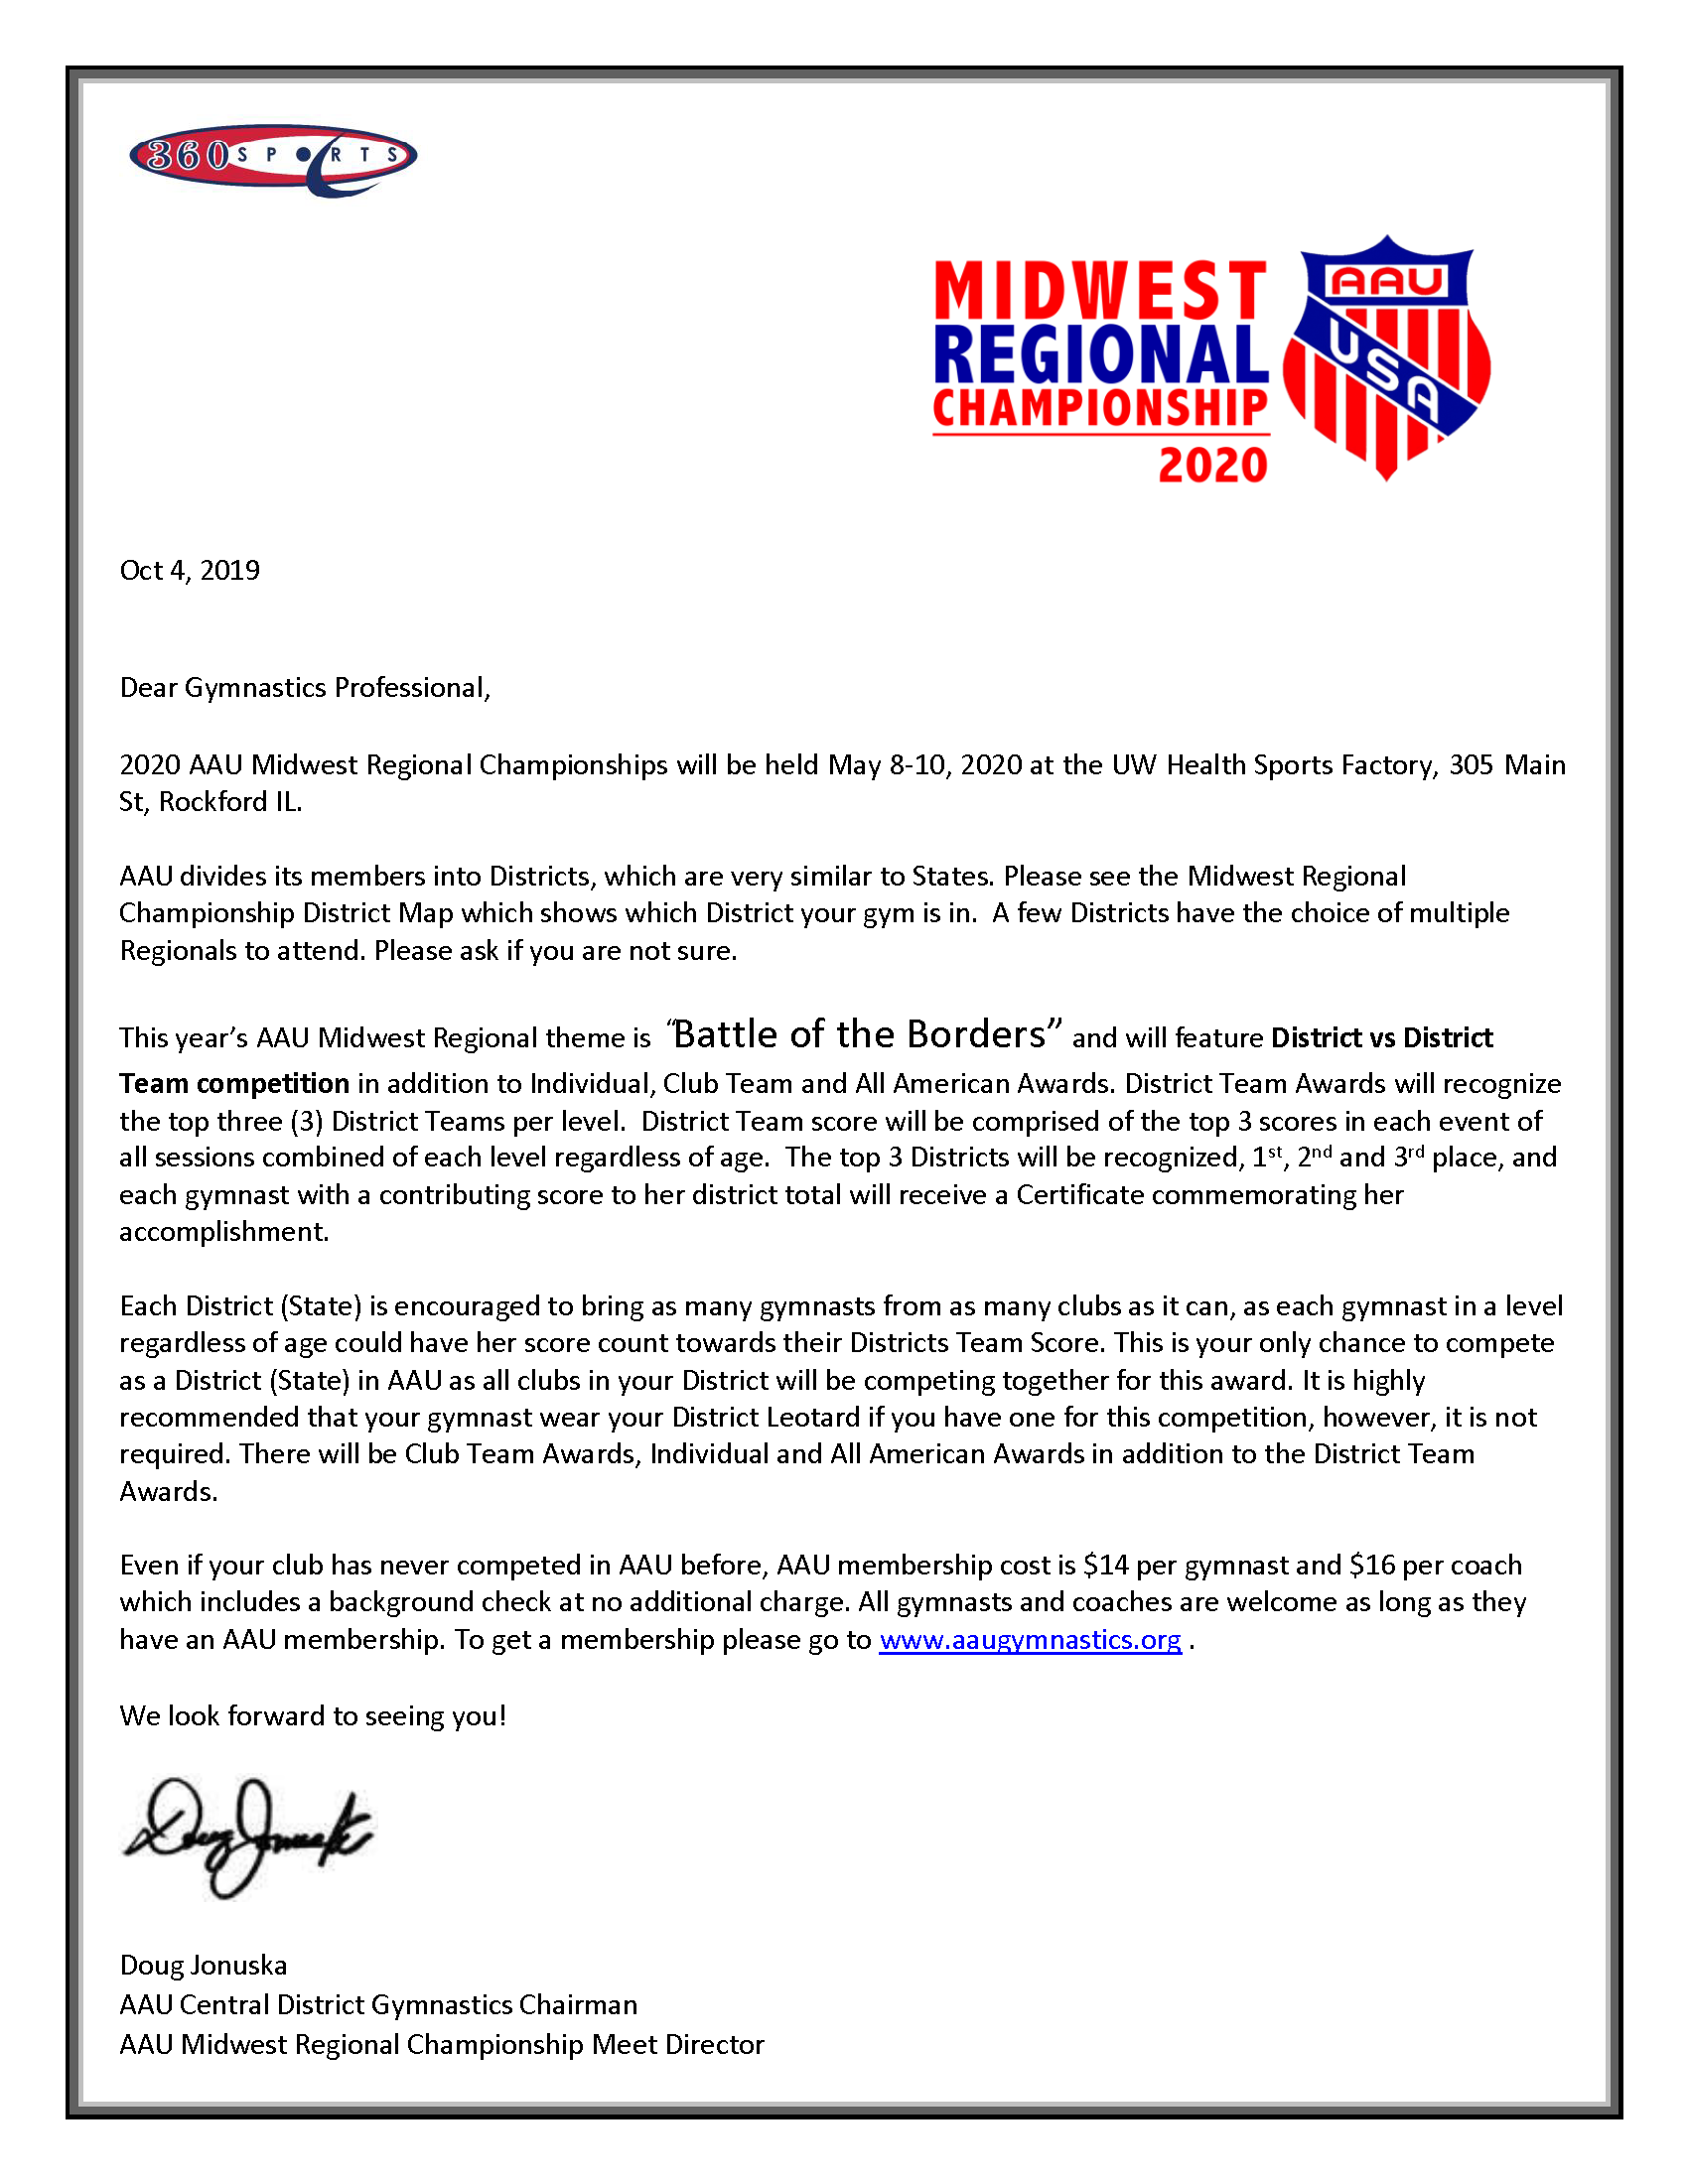 2020 AAU Midwest Regional Registration Packet -10.4.19_Page_1.png